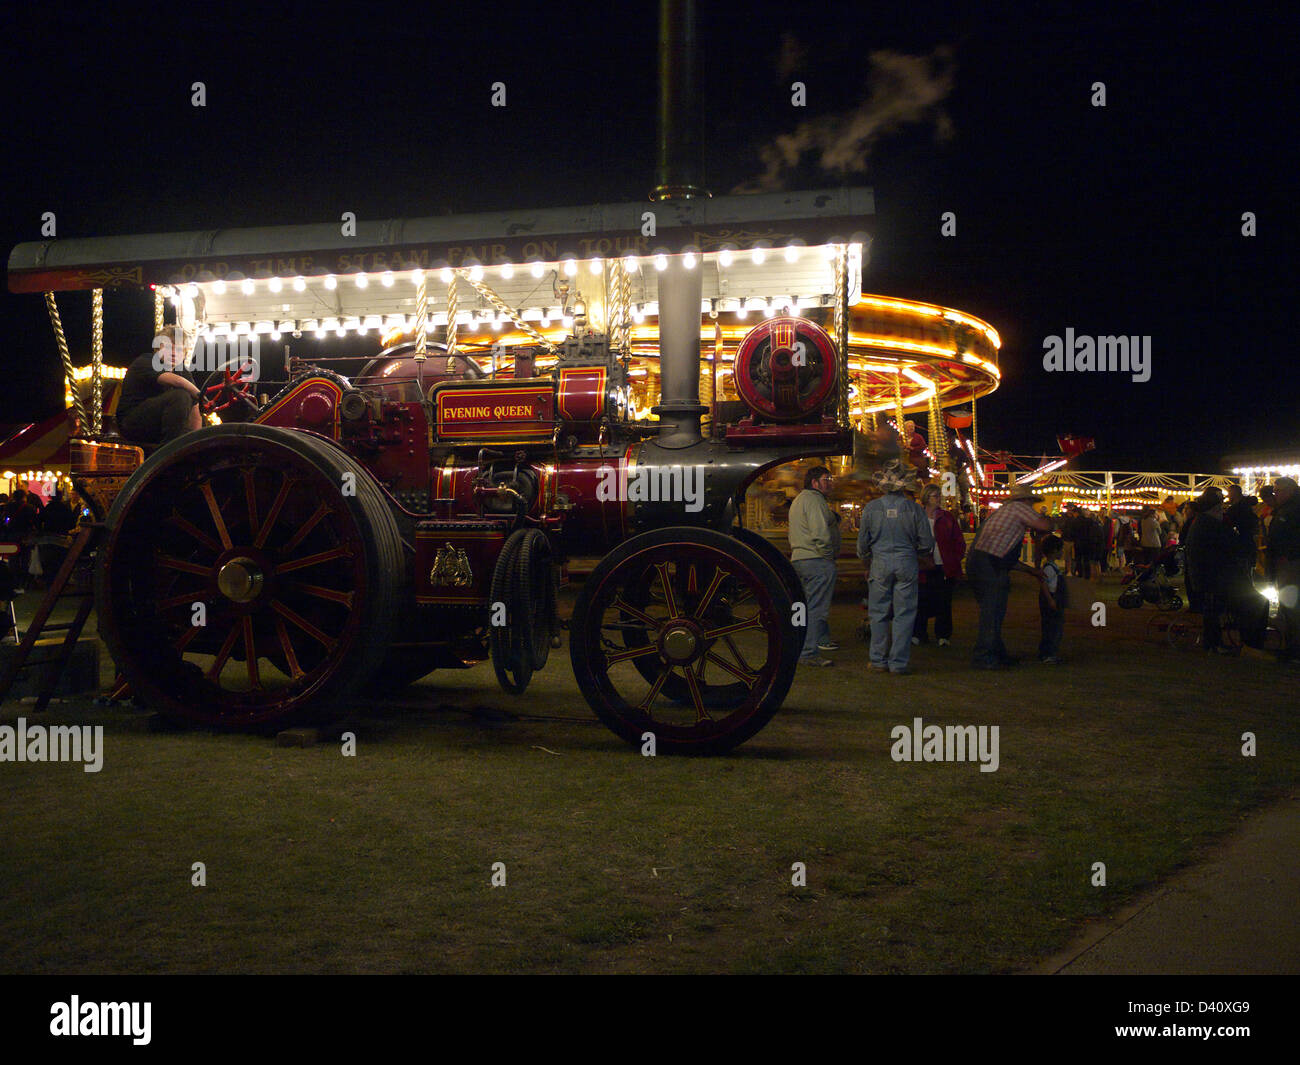 Vintage showman's traction engine working at the steam fair, Lincolnshire steam and vintage rally - Stock Image